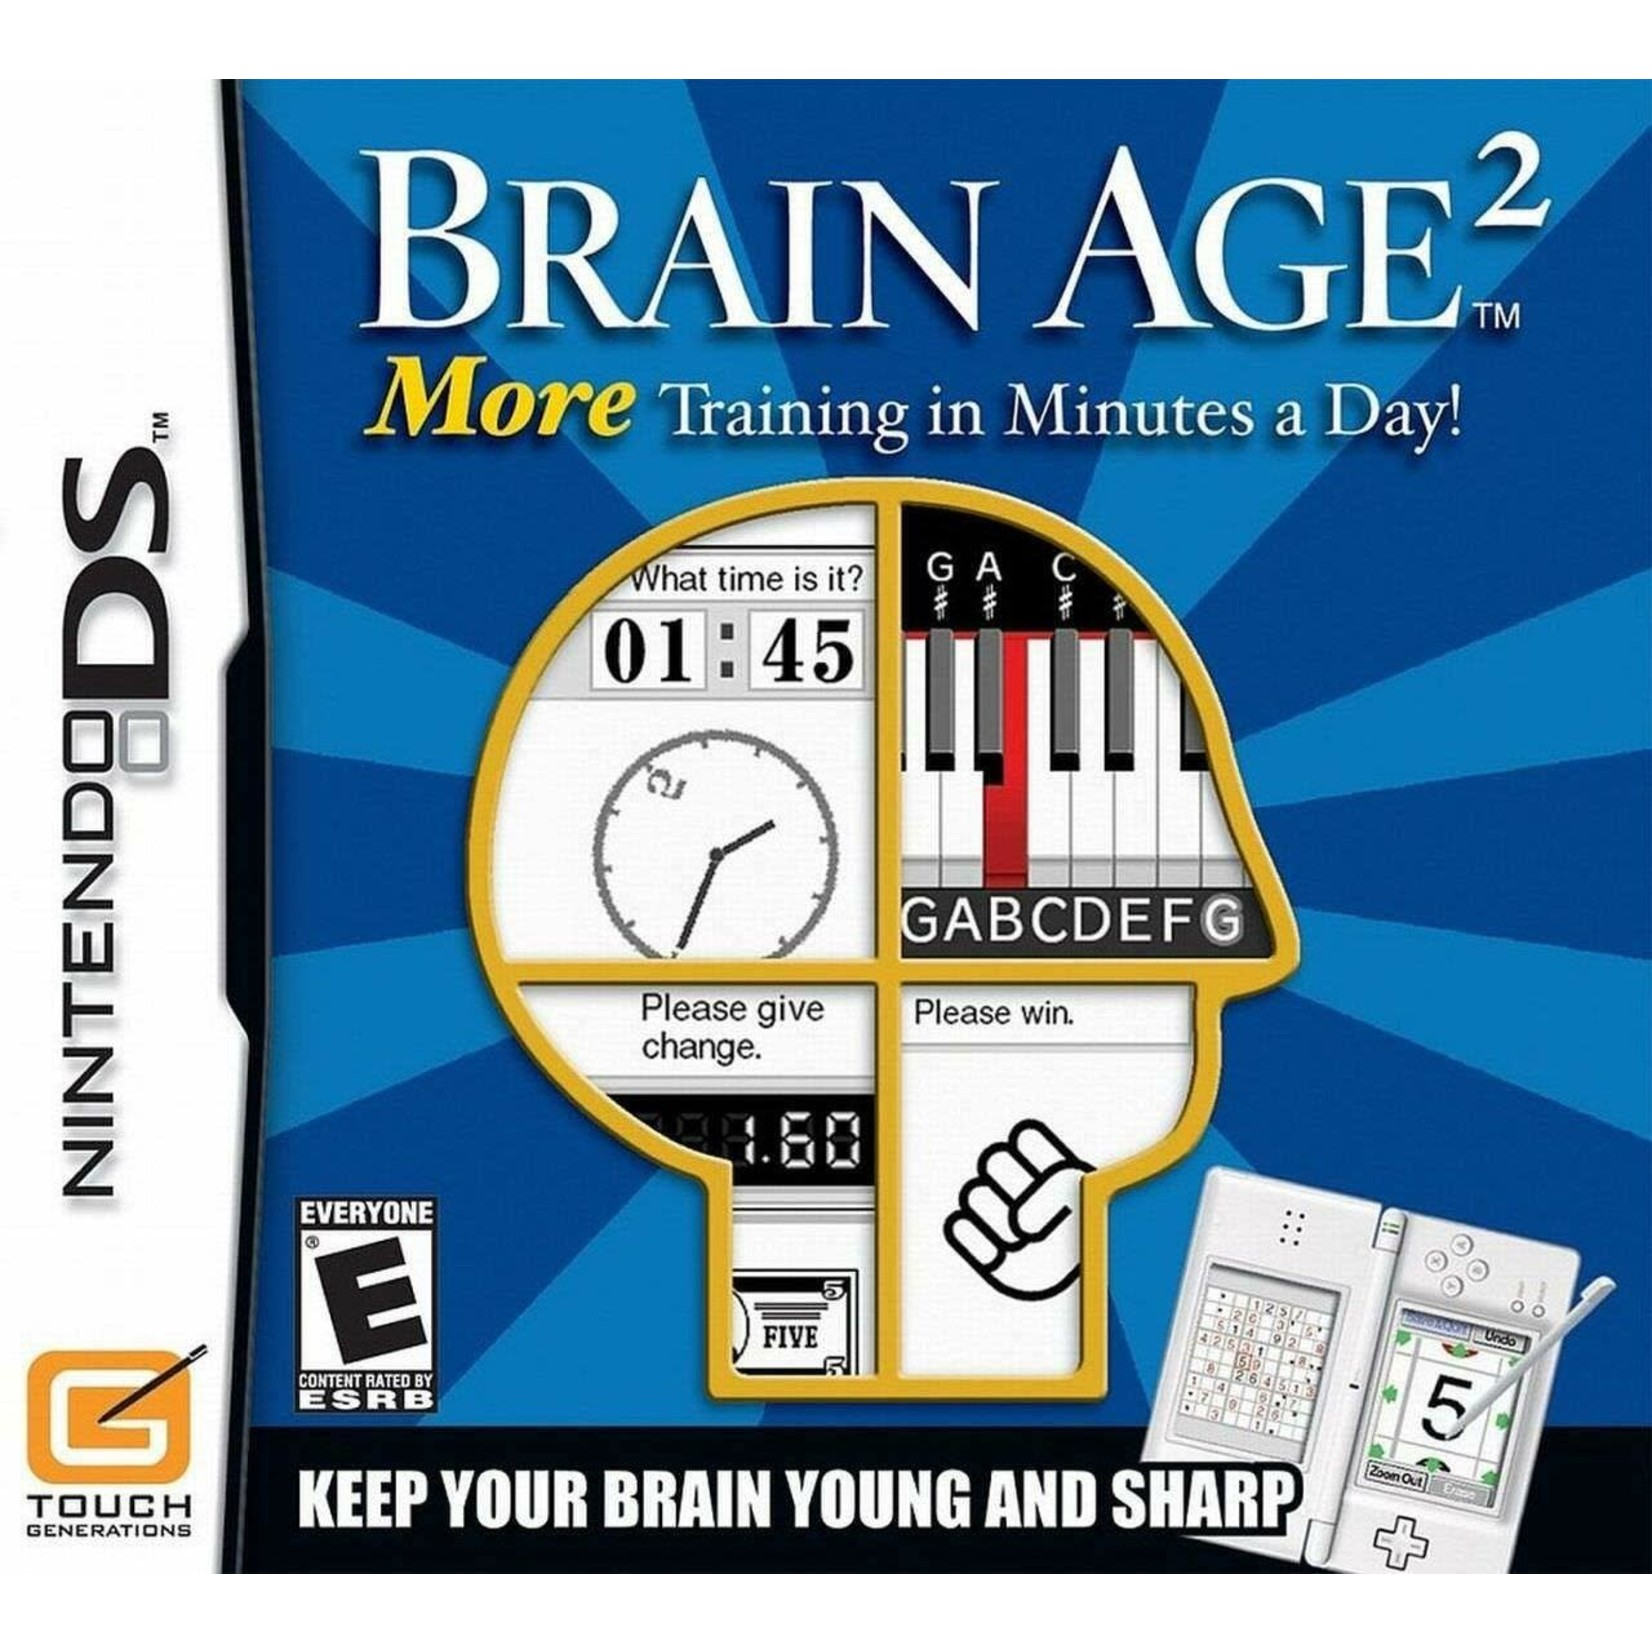 DSU-Brain Age 2: More Training In Minutes A Day